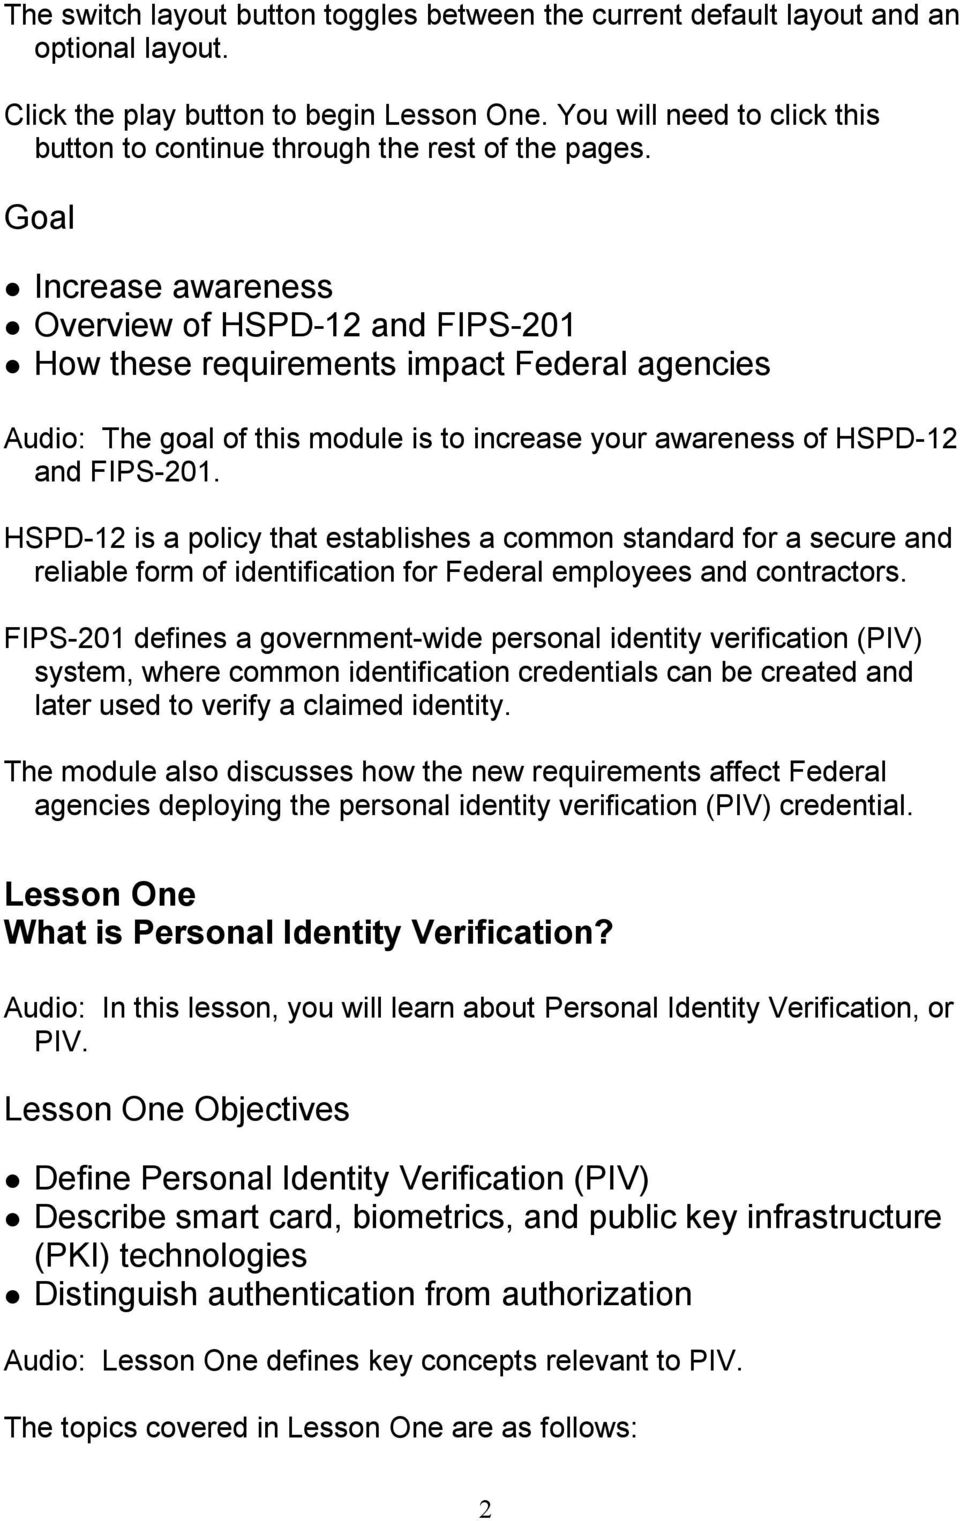 Goal Increase awareness Overview of HSPD 12 and FIPS 201 How these requirements impact Federal agencies Audio: The goal of this module is to increase your awareness of HSPD 12 and FIPS 201.